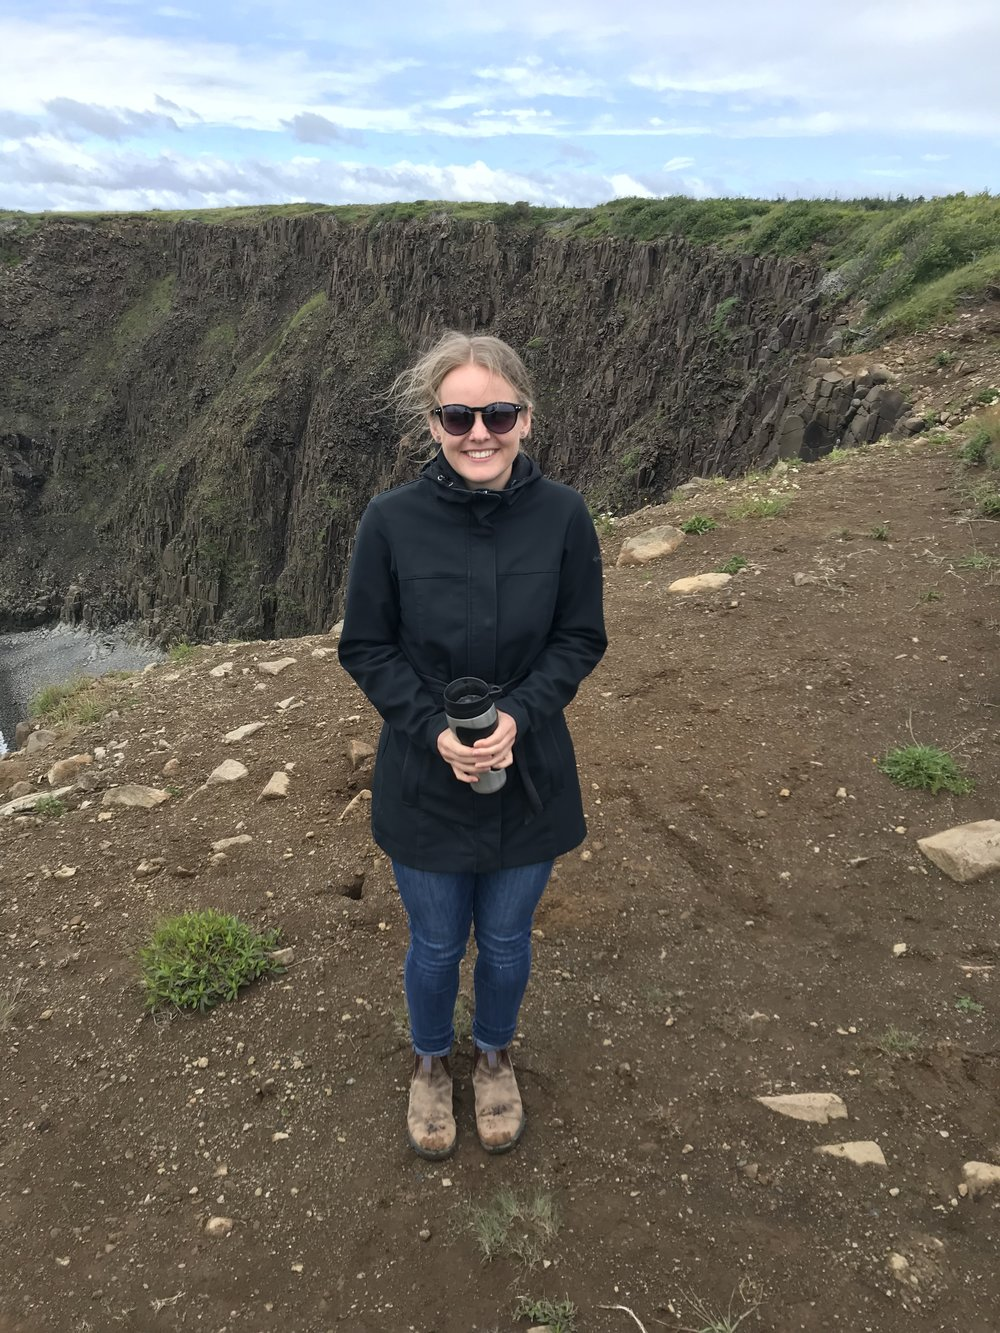 @iebrueck - This blog post is from Irene Brueckner-Irwin. Irene is a Girls Gone Water co-founder and works in nature conservation. She hails from Kingston, Ontario (but is currently living a nomadic life). She has a passion for connecting diverse people to the diversity of nature.